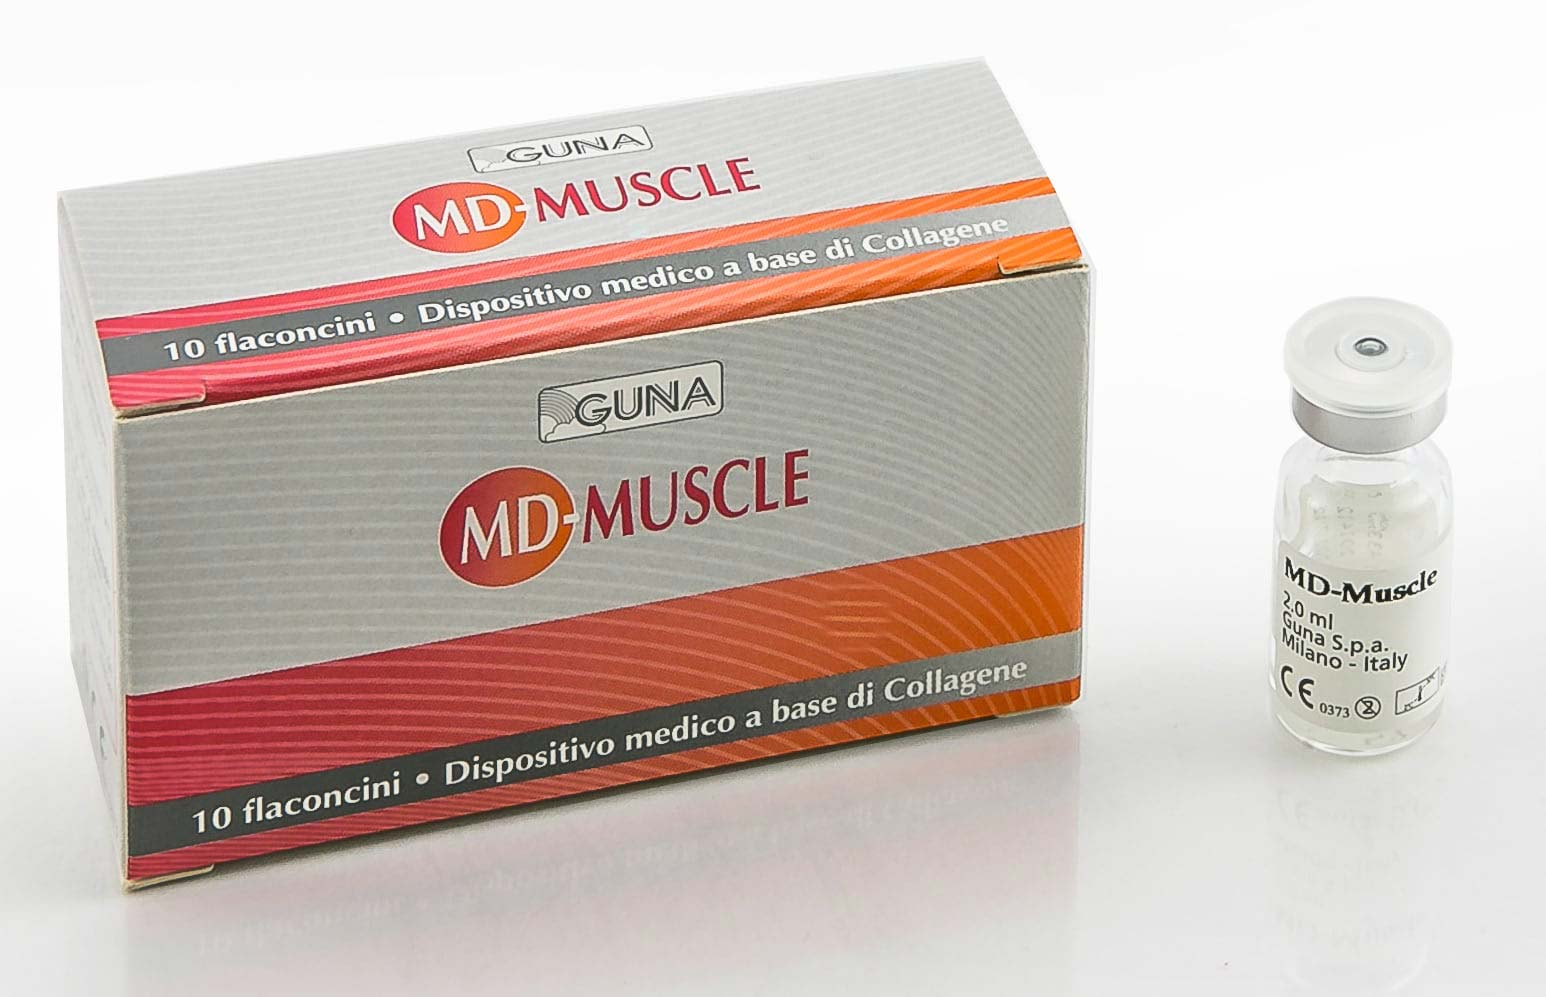 Md-muscle (10 flaconcini)